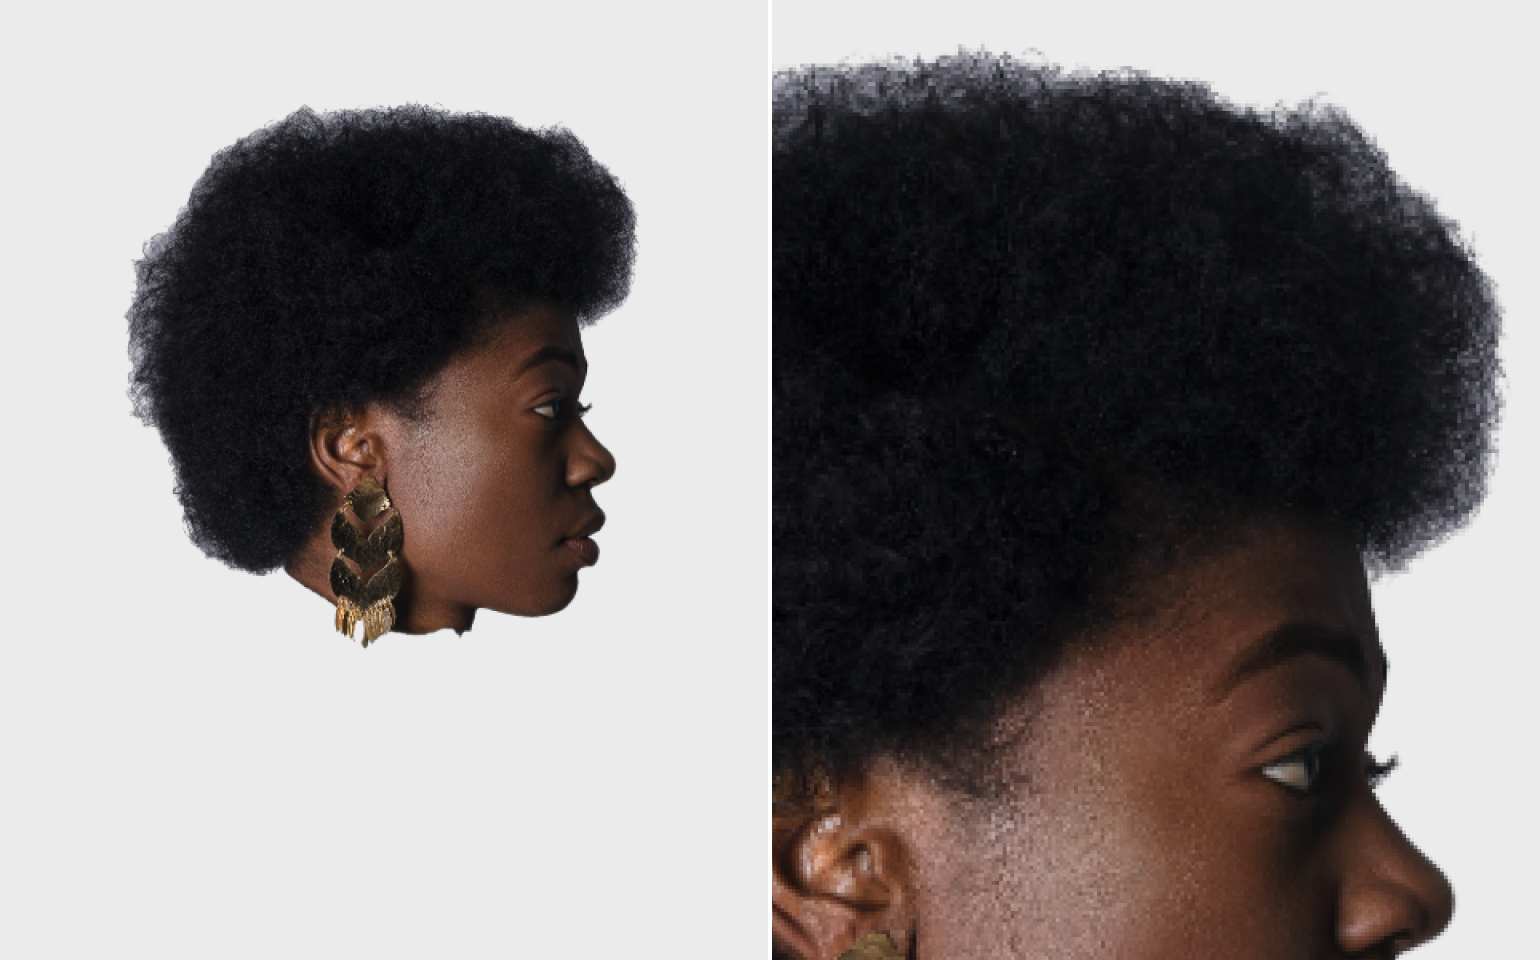 Collage with cut background, the head of the woman with dark curly hair with cut off the body in profile and her hair close up the result by PhotoScissors